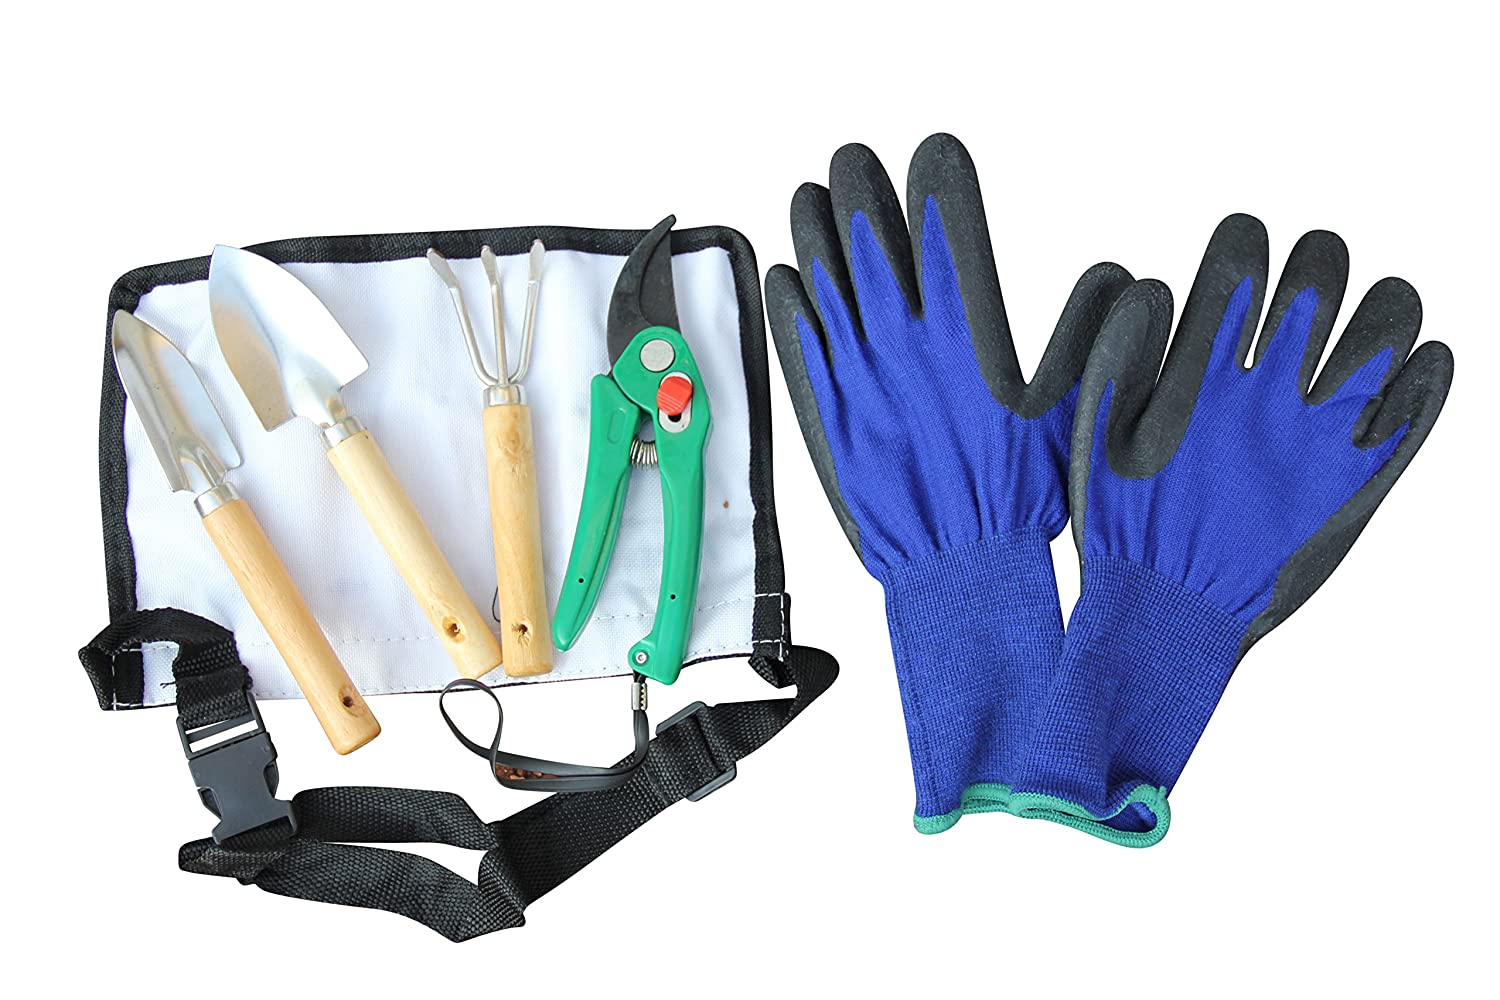 Mini Gardening Package-4 Pce Bonsai Or TransplantingTool Set-Women's Durable Long Cuff Gardening Gloves Included-Seedling Transplant Package for Lady Gardeners